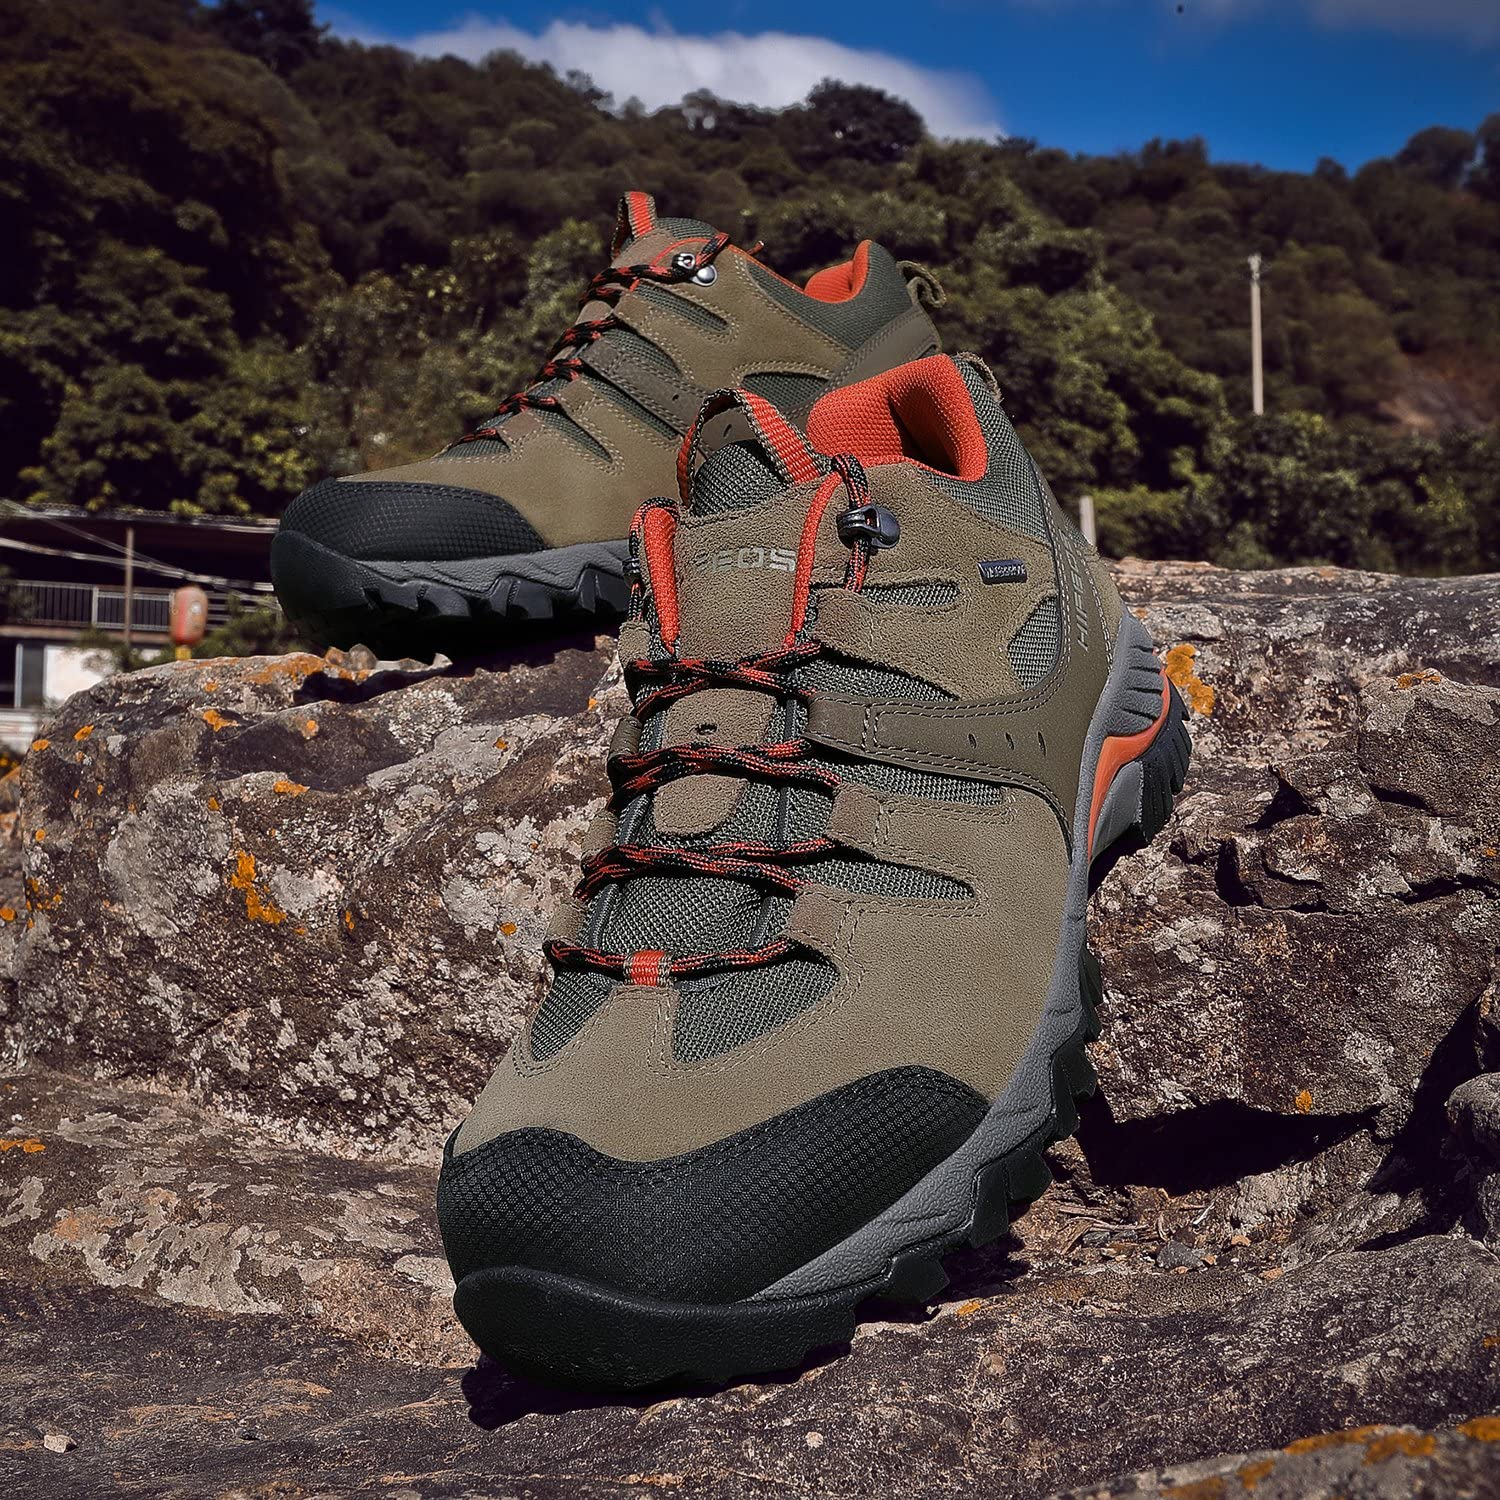 HIFEOS Hiking Boots Leather Trekking Shoes Outdoor Waterproof ...